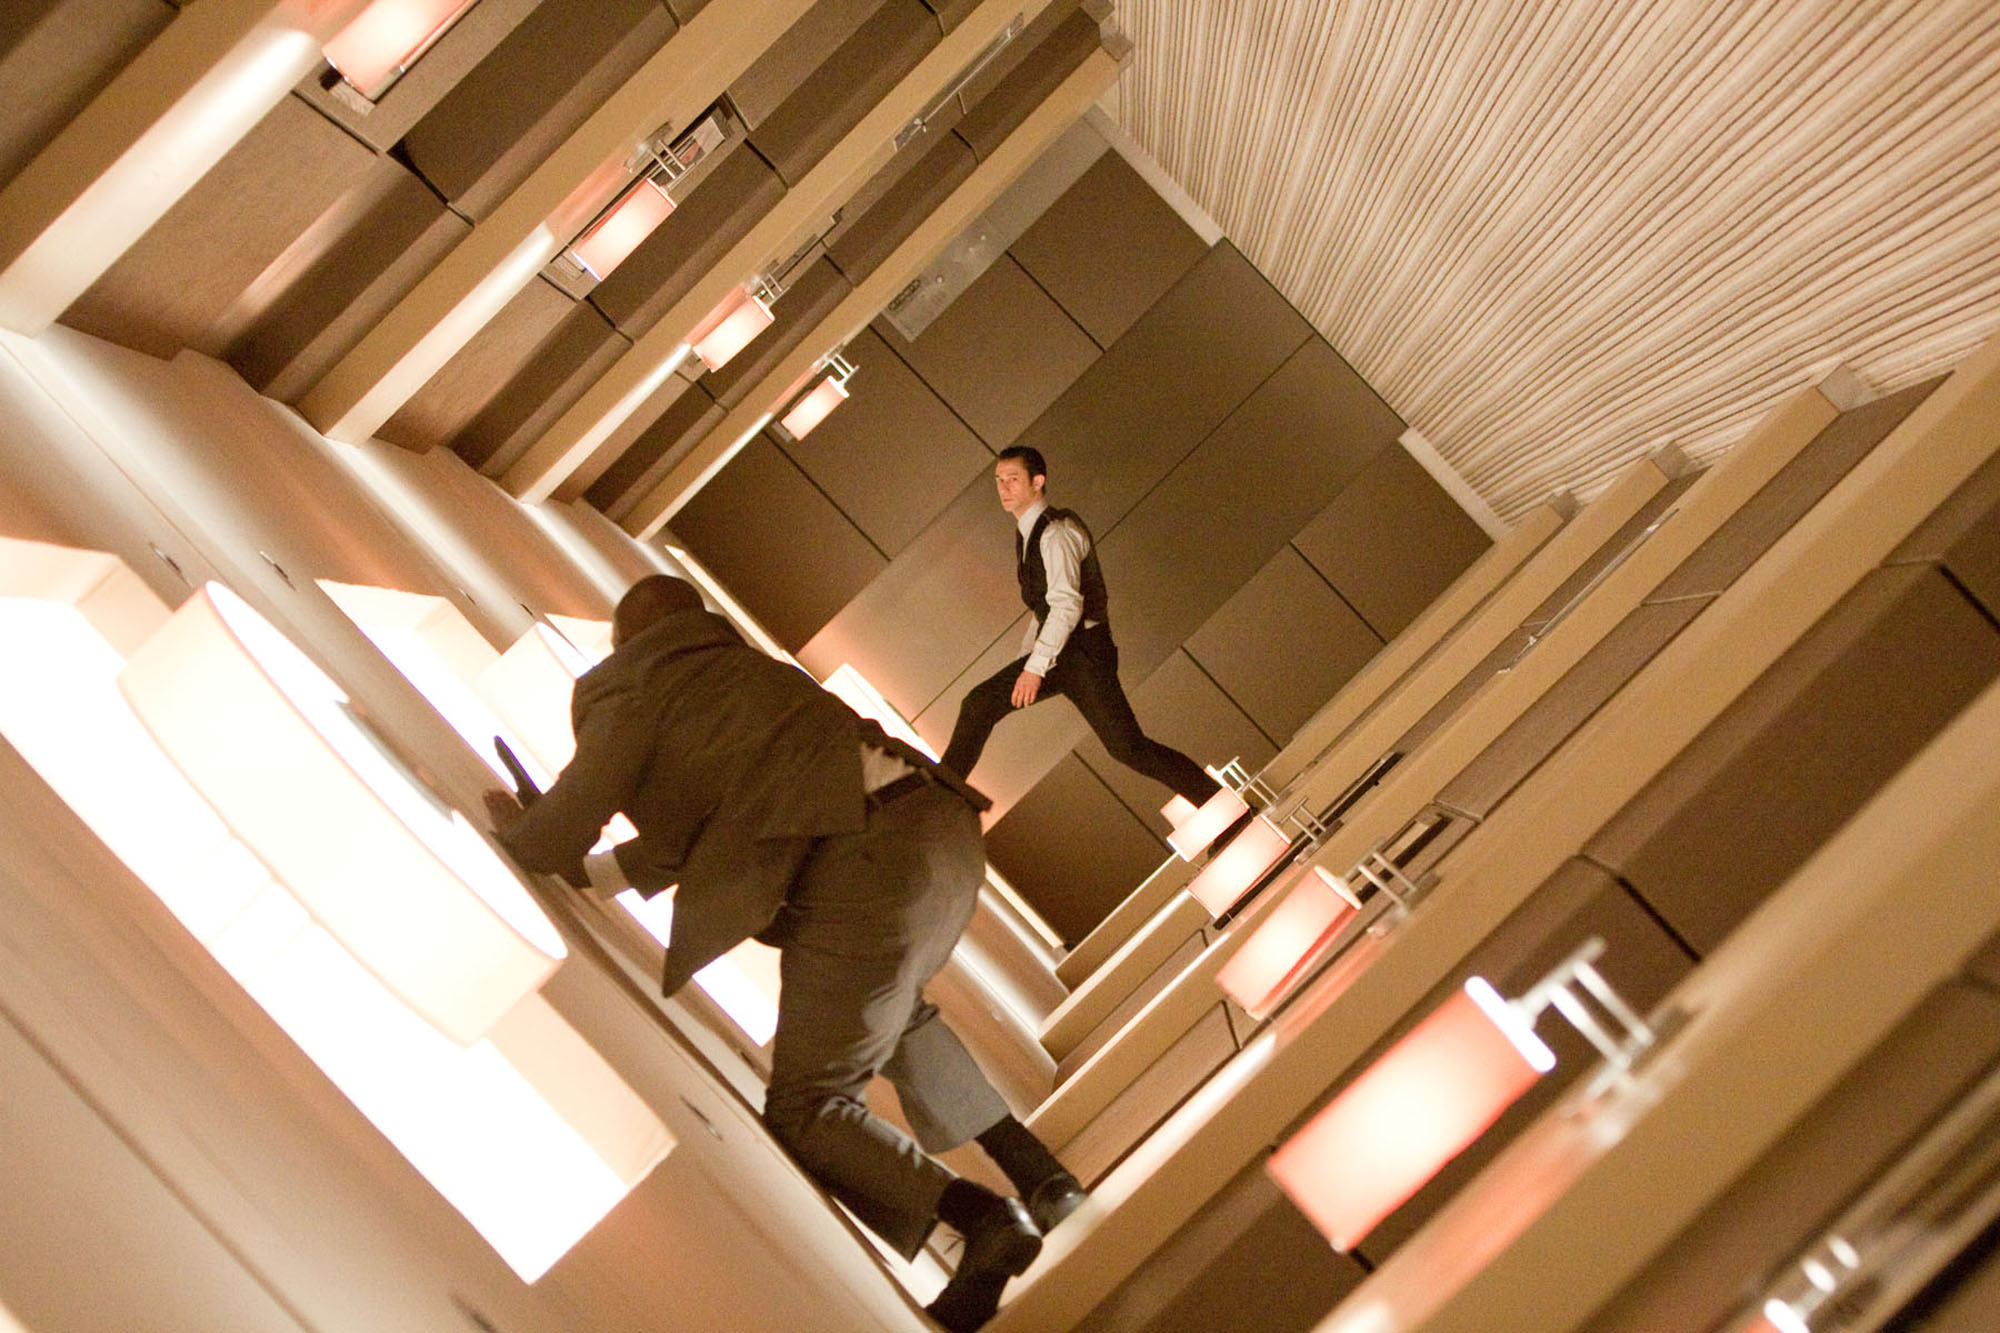 Joseph Gordon-Levitt in the zero g hotel corridor fight scene in Inception (2010)